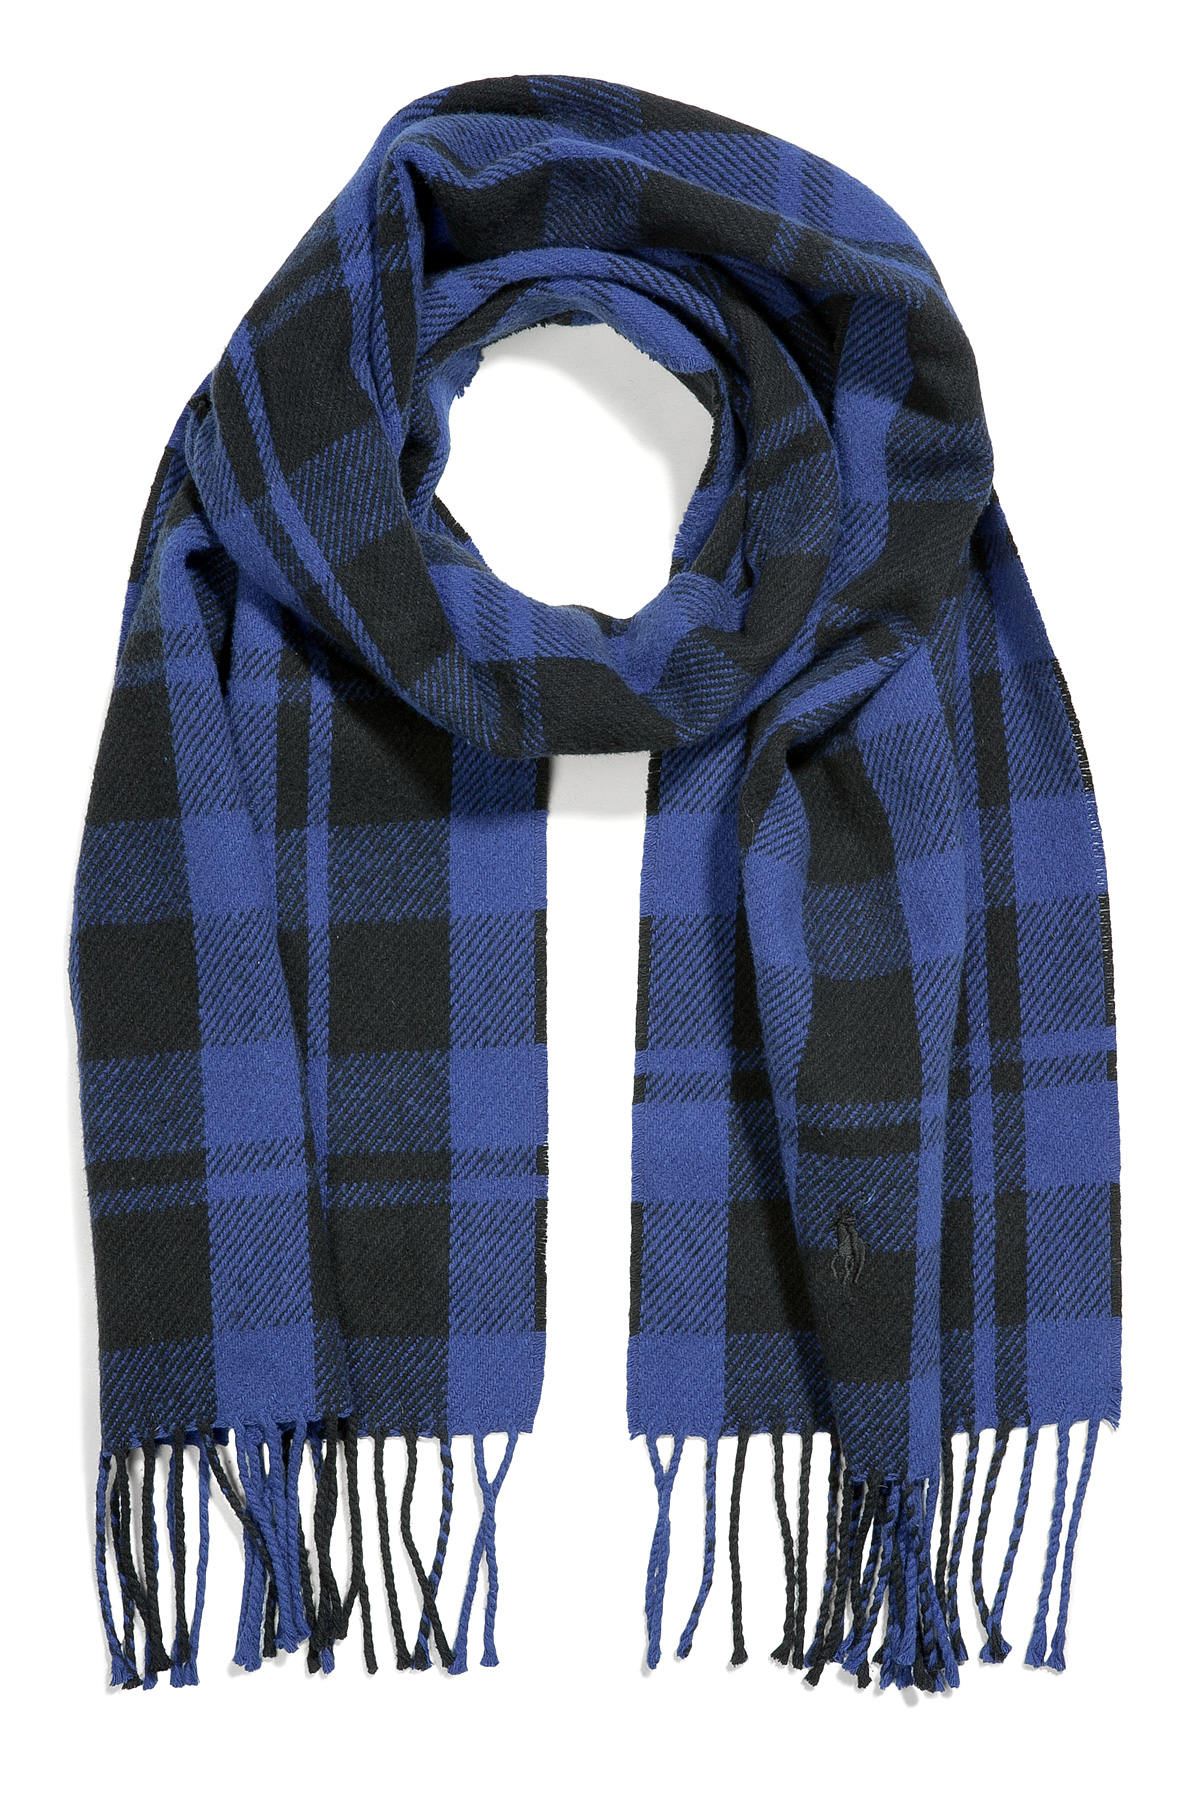 Polo ralph lauren Royal Blue and Black Plaid Cotton Scarf in Blue ...